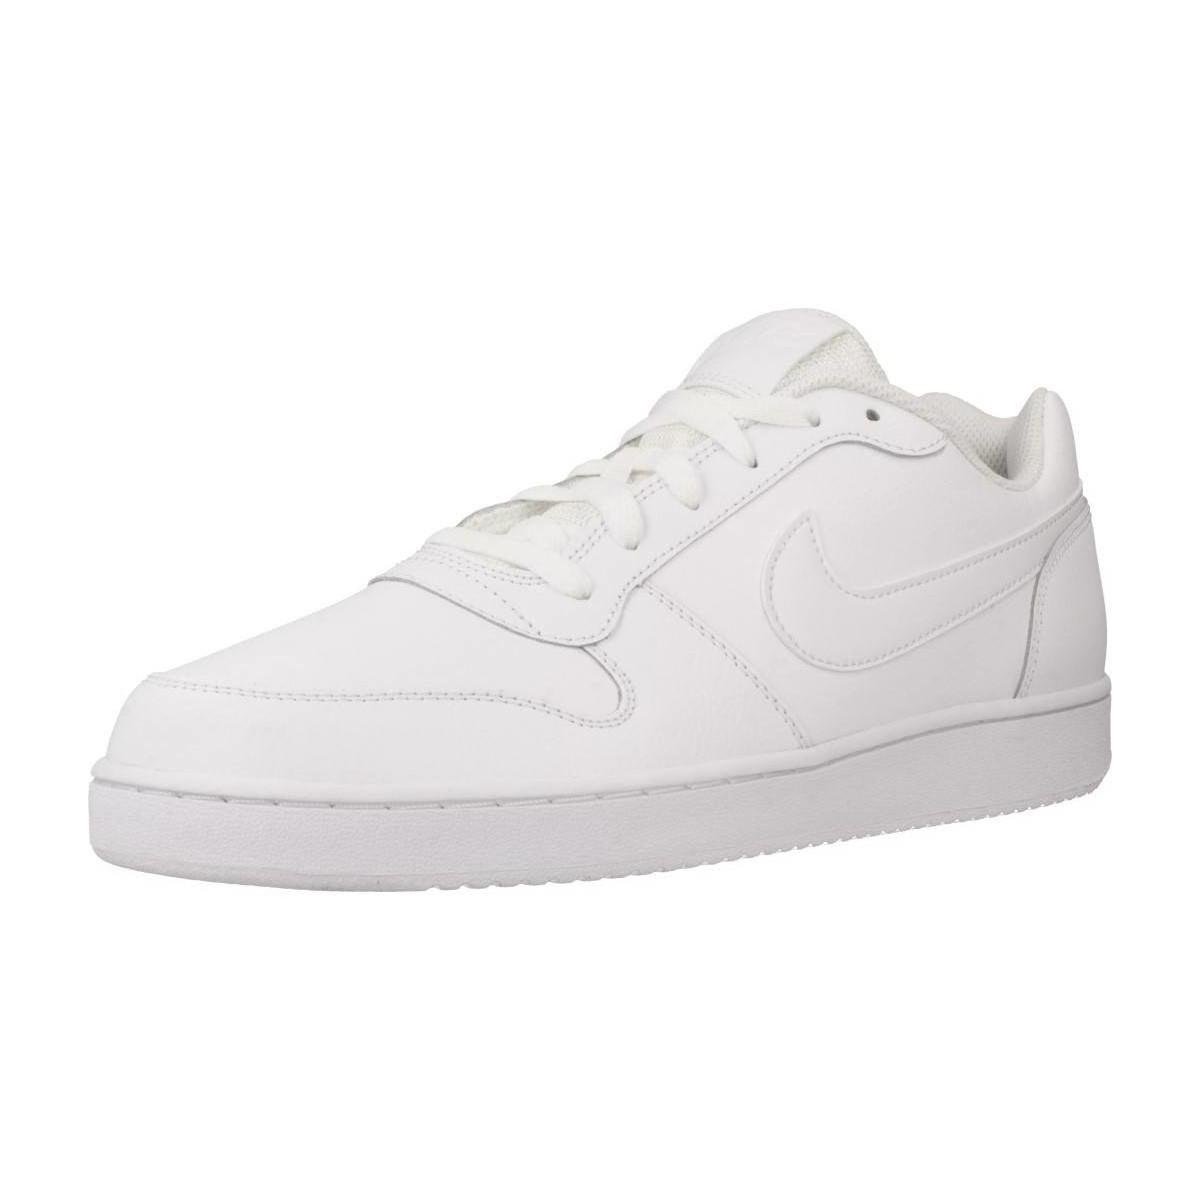 2c4240bdd4 Nike Ebernon Low Men s Shoes (trainers) In White in White for Men - Lyst